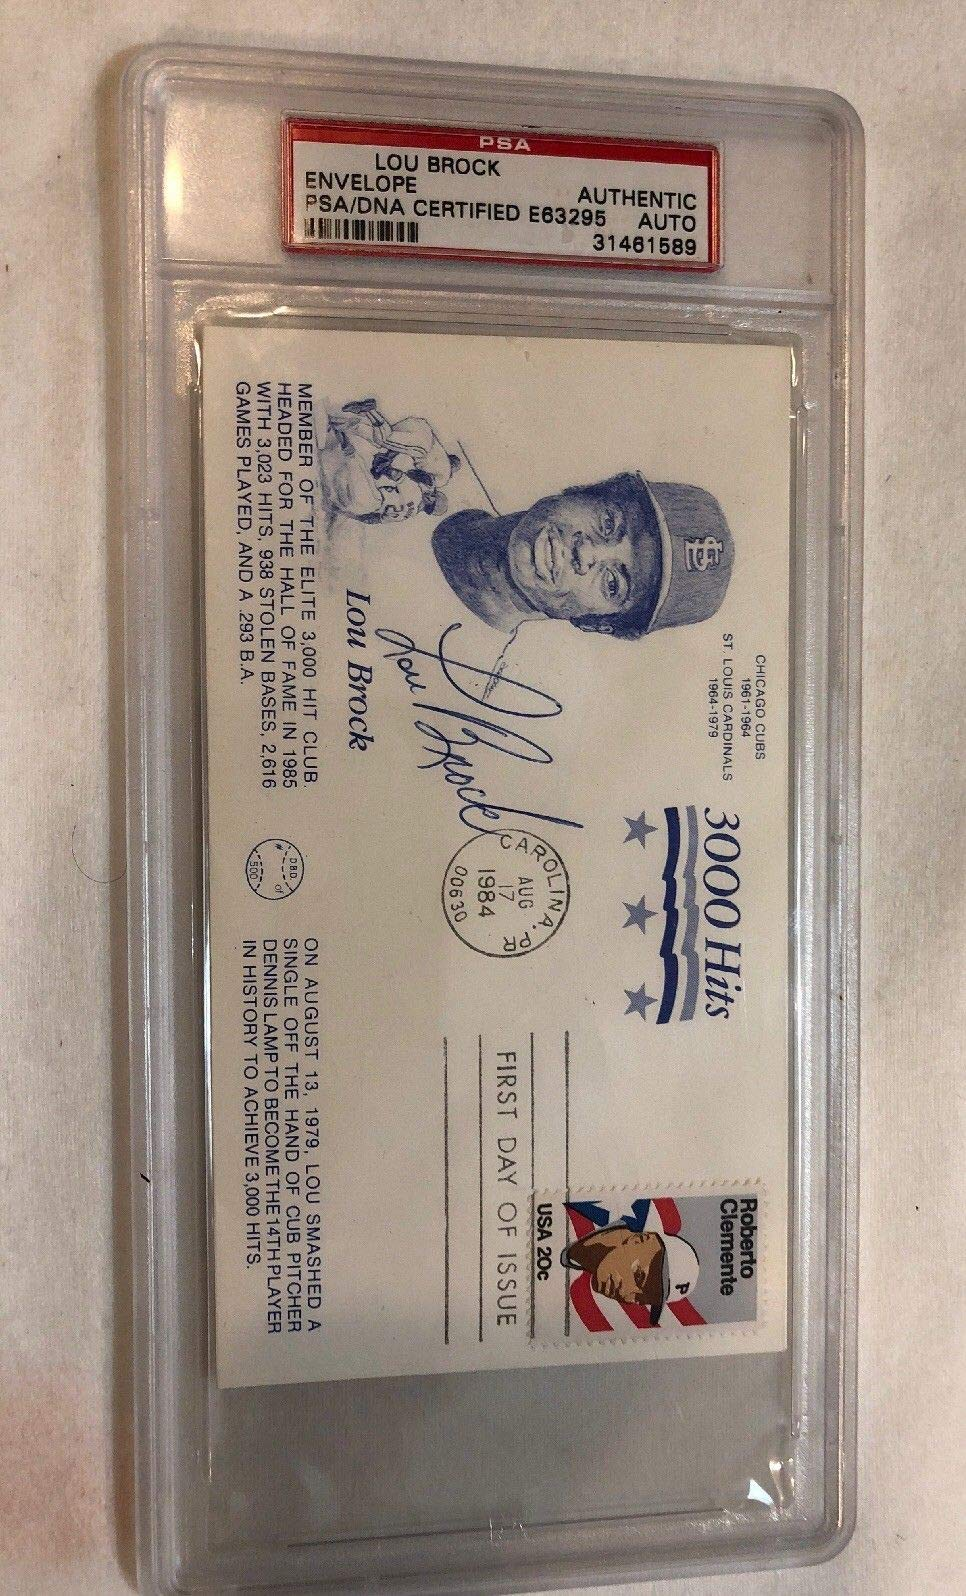 Lou Brock Autographed Signed Fdc First Day Cover 3000 Base Hits Autographed Signed PSA/DNA Authentic Hof